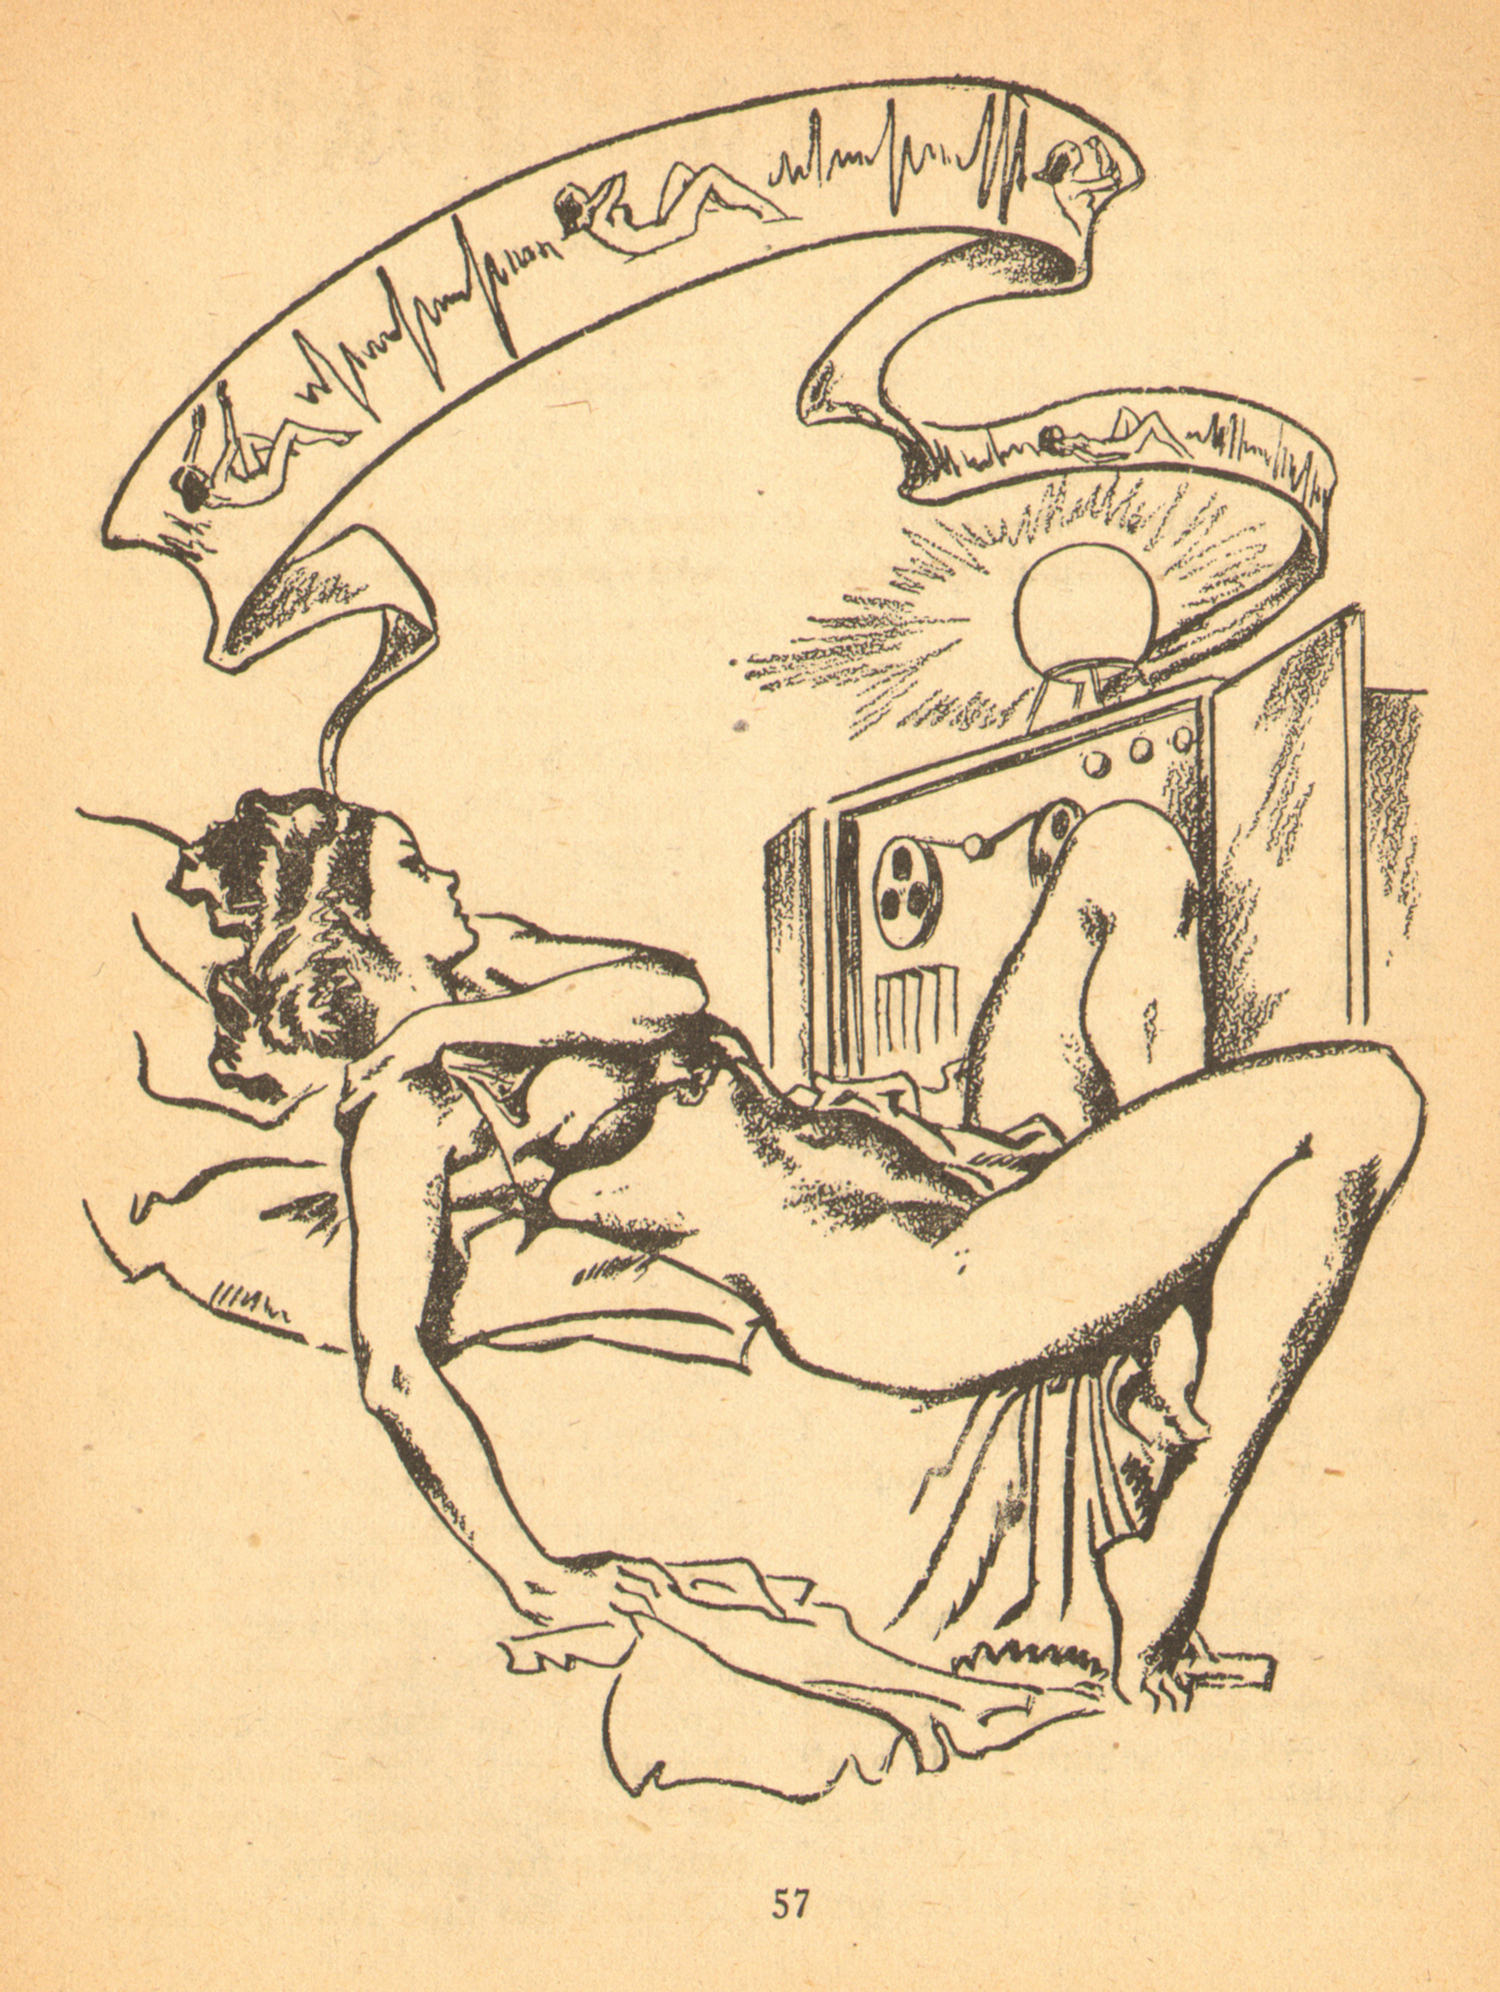 Interior illustration in Imaginative Tales, January 1956